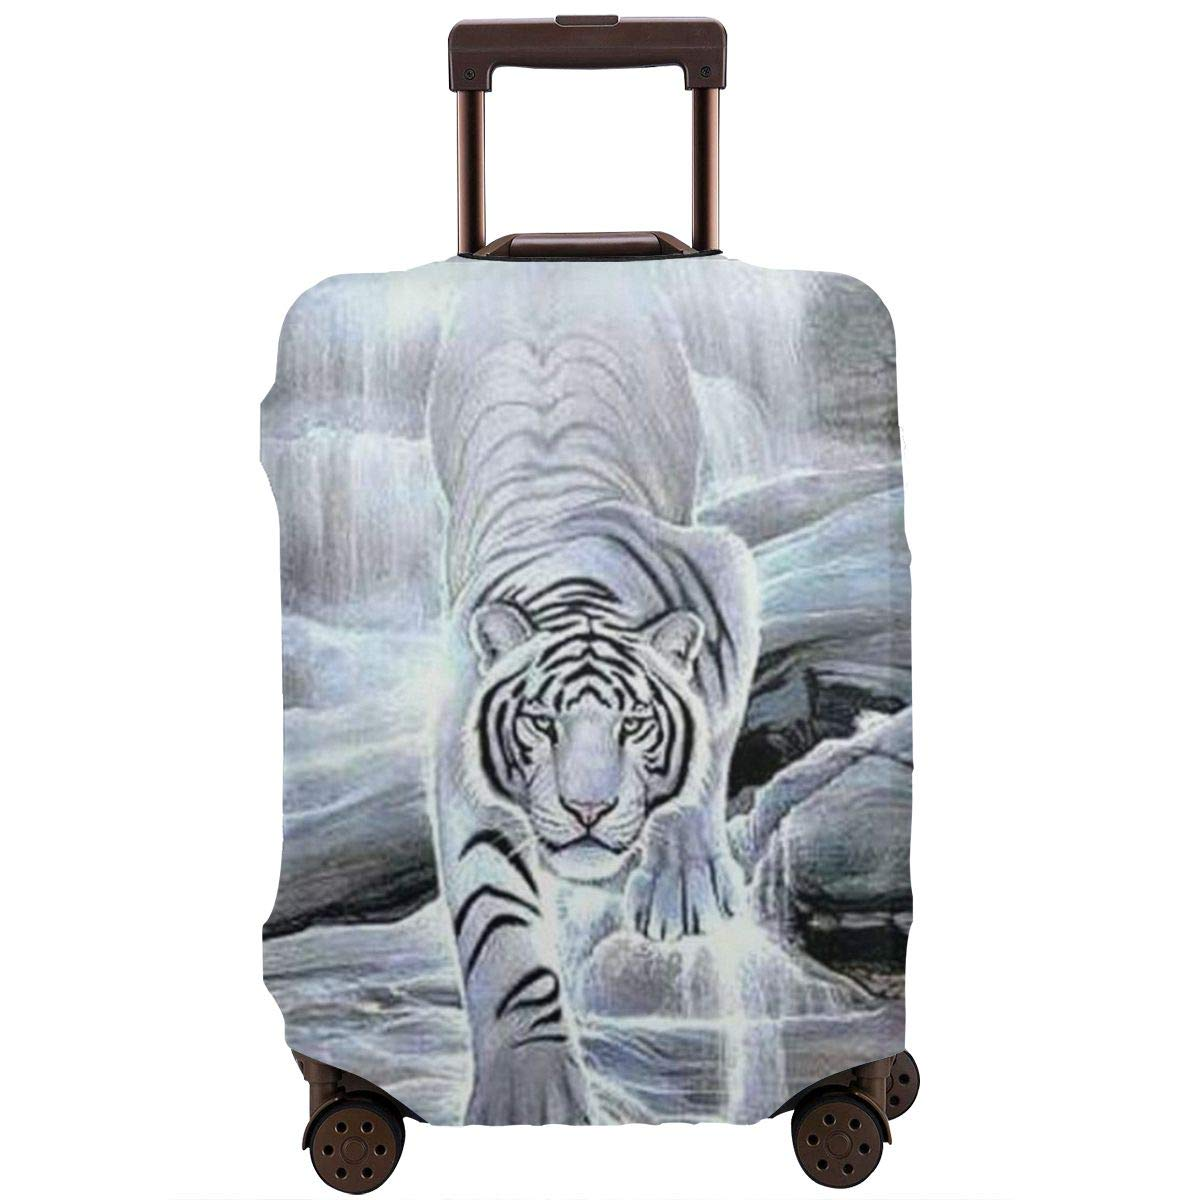 Bvylxz White Tiger Travel Suitcase Cover Protector Luggage Protective Cover Washable Printed Zipper Baggage Suitcase Cover by Bvylxz